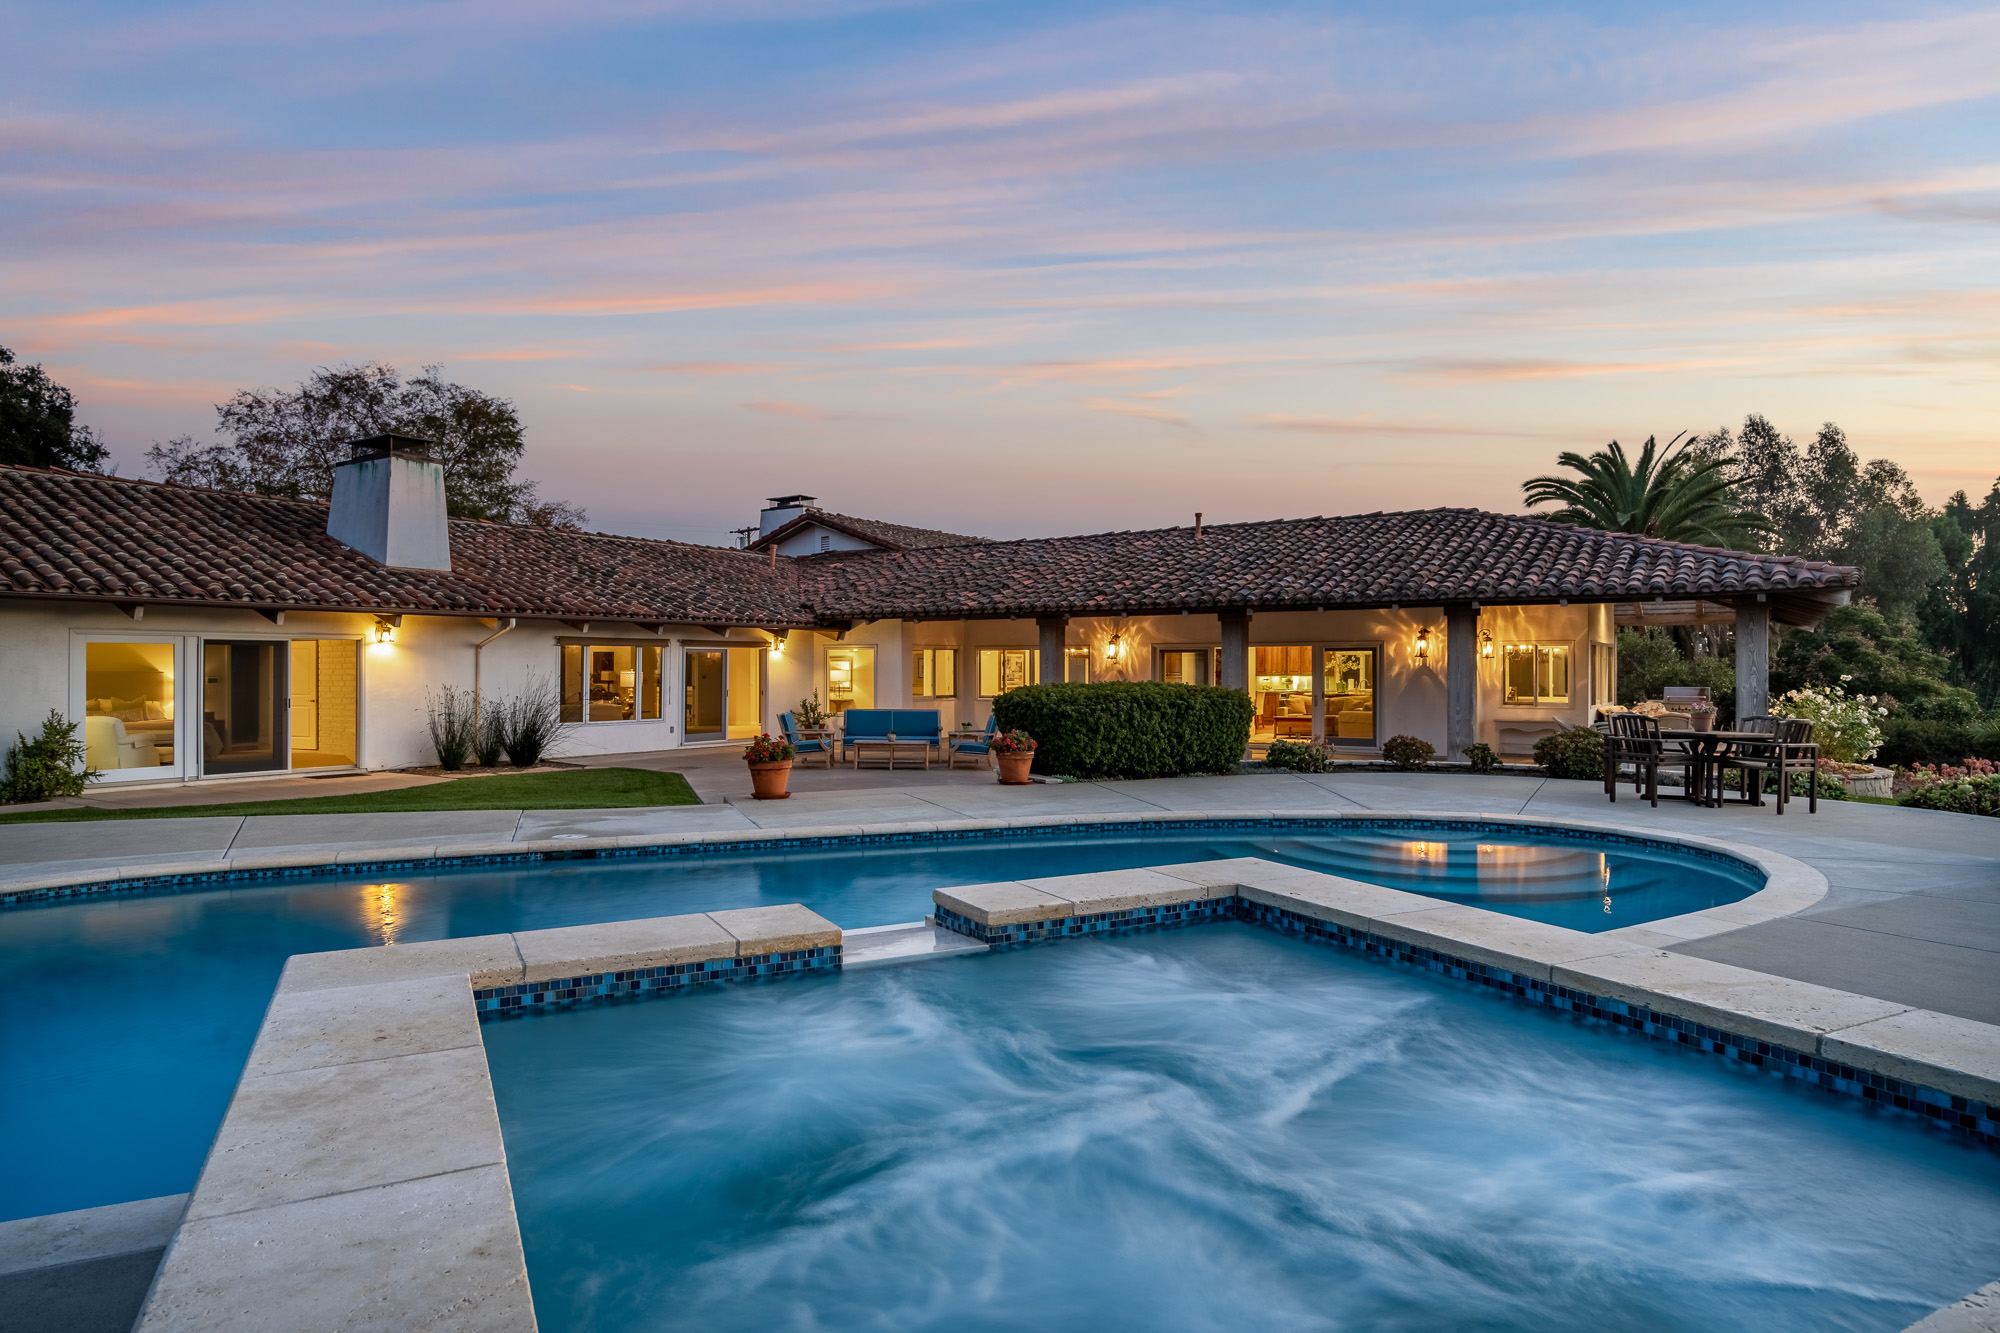 17410 Via De Fortuna -  Rancho Santa Fe, CA 92067